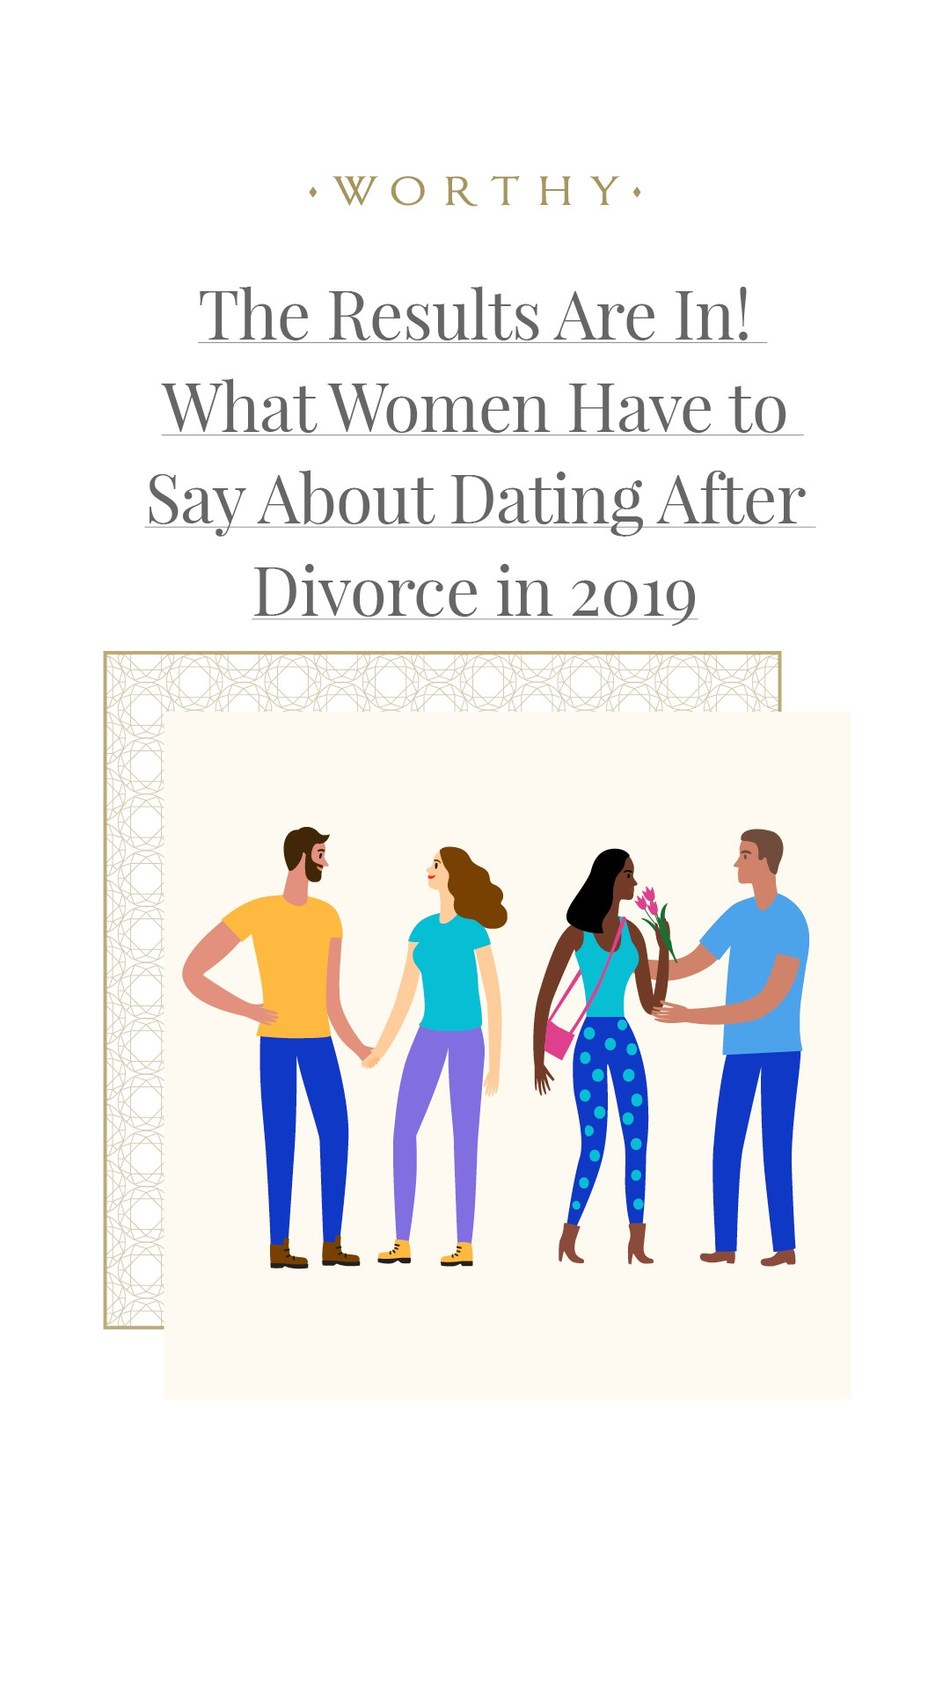 Worthy.com releases new Dating After Divorce study. The first large-scale study focused solely on women who have and are going through the divorce journey, with over 1,700 female participants from across the country. 78% of the women surveyed are already in dating mindset before divorce papers are signed.  Divorced women value their worth and do not waste their time when it comes to dating again.